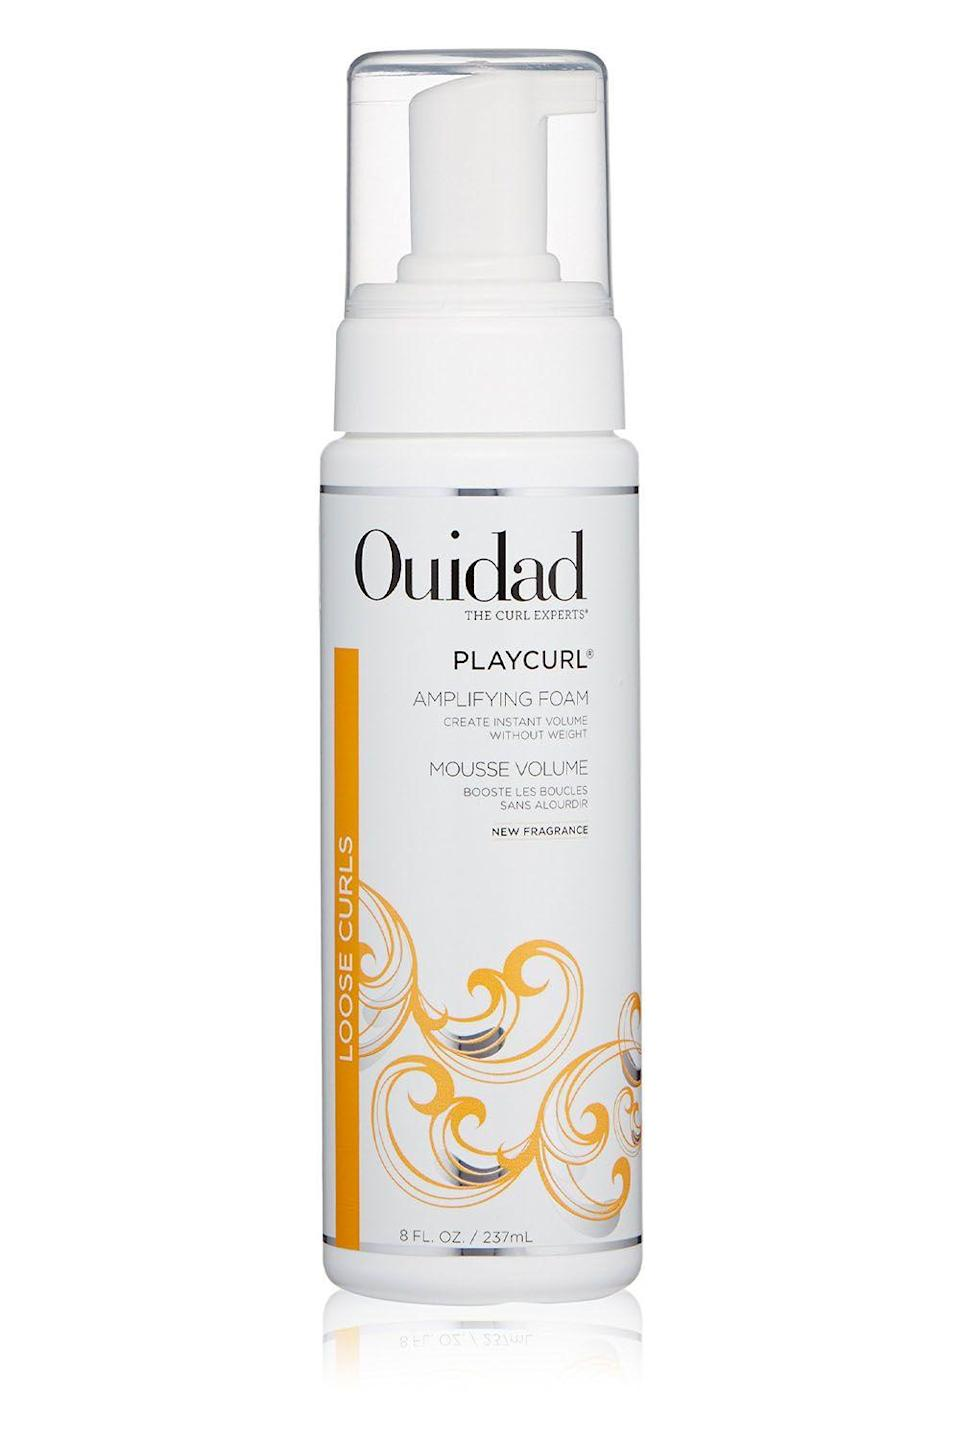 """<p><strong>Ouidad</strong></p><p>ulta.com</p><p><strong>$20.80</strong></p><p><a href=""""https://www.ulta.com/playcurl-volumizing-foam?productId=xlsImpprod3780017"""" rel=""""nofollow noopener"""" target=""""_blank"""" data-ylk=""""slk:Shop Now"""" class=""""link rapid-noclick-resp"""">Shop Now</a></p><p>This foaming mousse will give your fine curls the volume and definition of your dreams. Its lightweight formula helps moisturize strands to add shine and smooth flyaways, while <strong>somehow (magic? Sorcery? No, polymers) giving your curls root-boosting volume</strong>. Scrunch and twirl a golf-ball sized puff through damp-not wet-hair, from roots to tips, then diffuse or air-dry.</p>"""